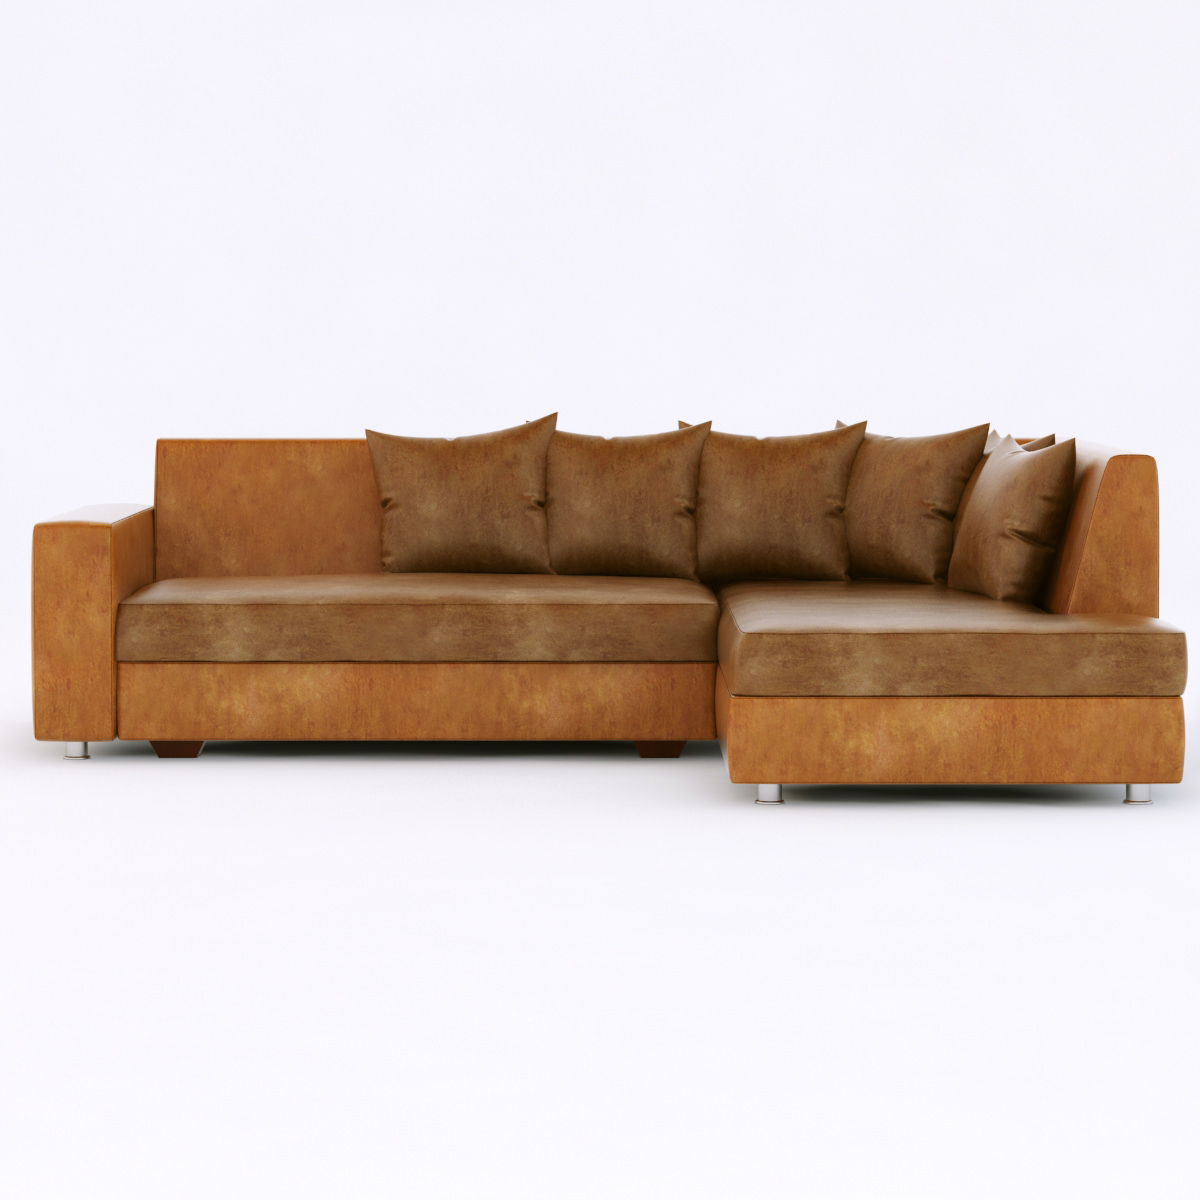 Modern sofa 5 3d models for Sofa 3d model